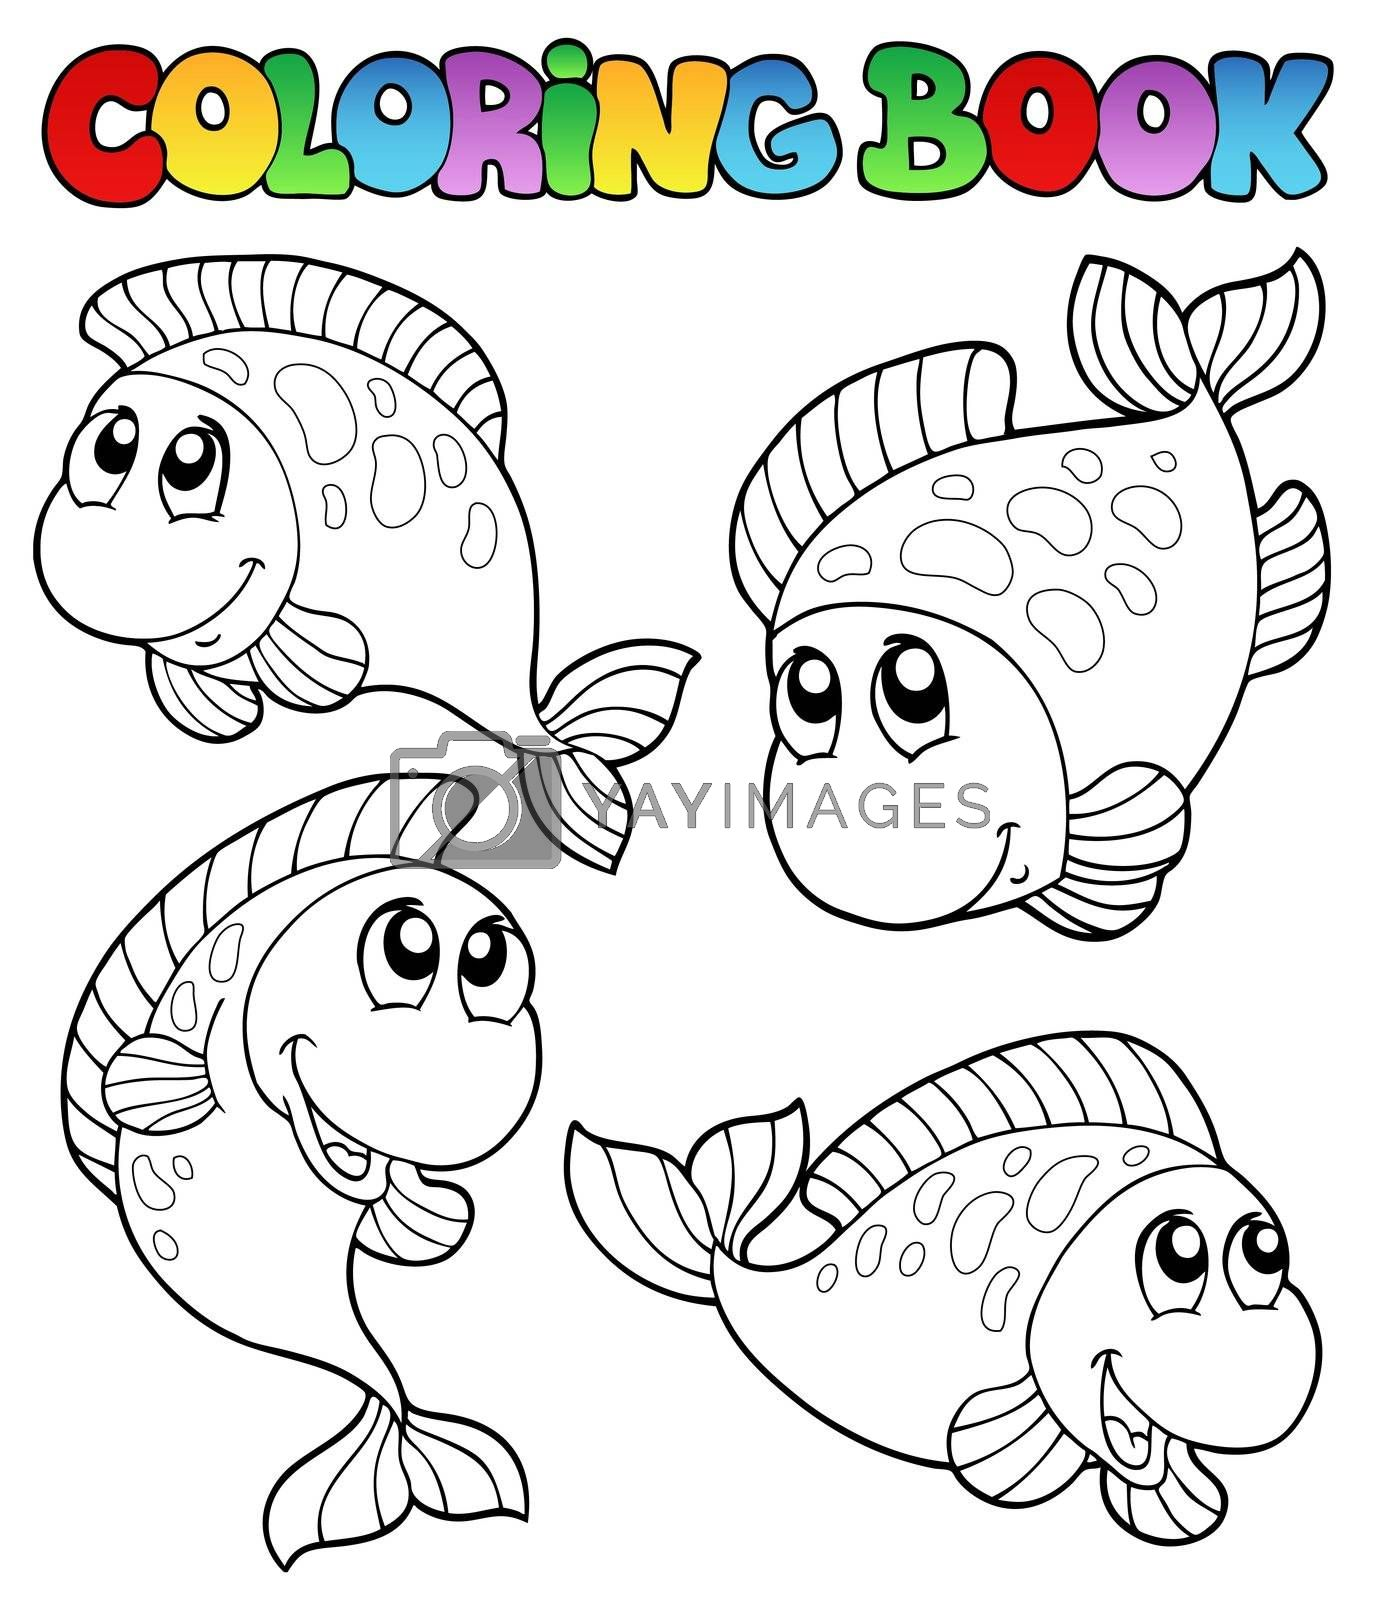 Coloring book with four fishes - vector illustration.